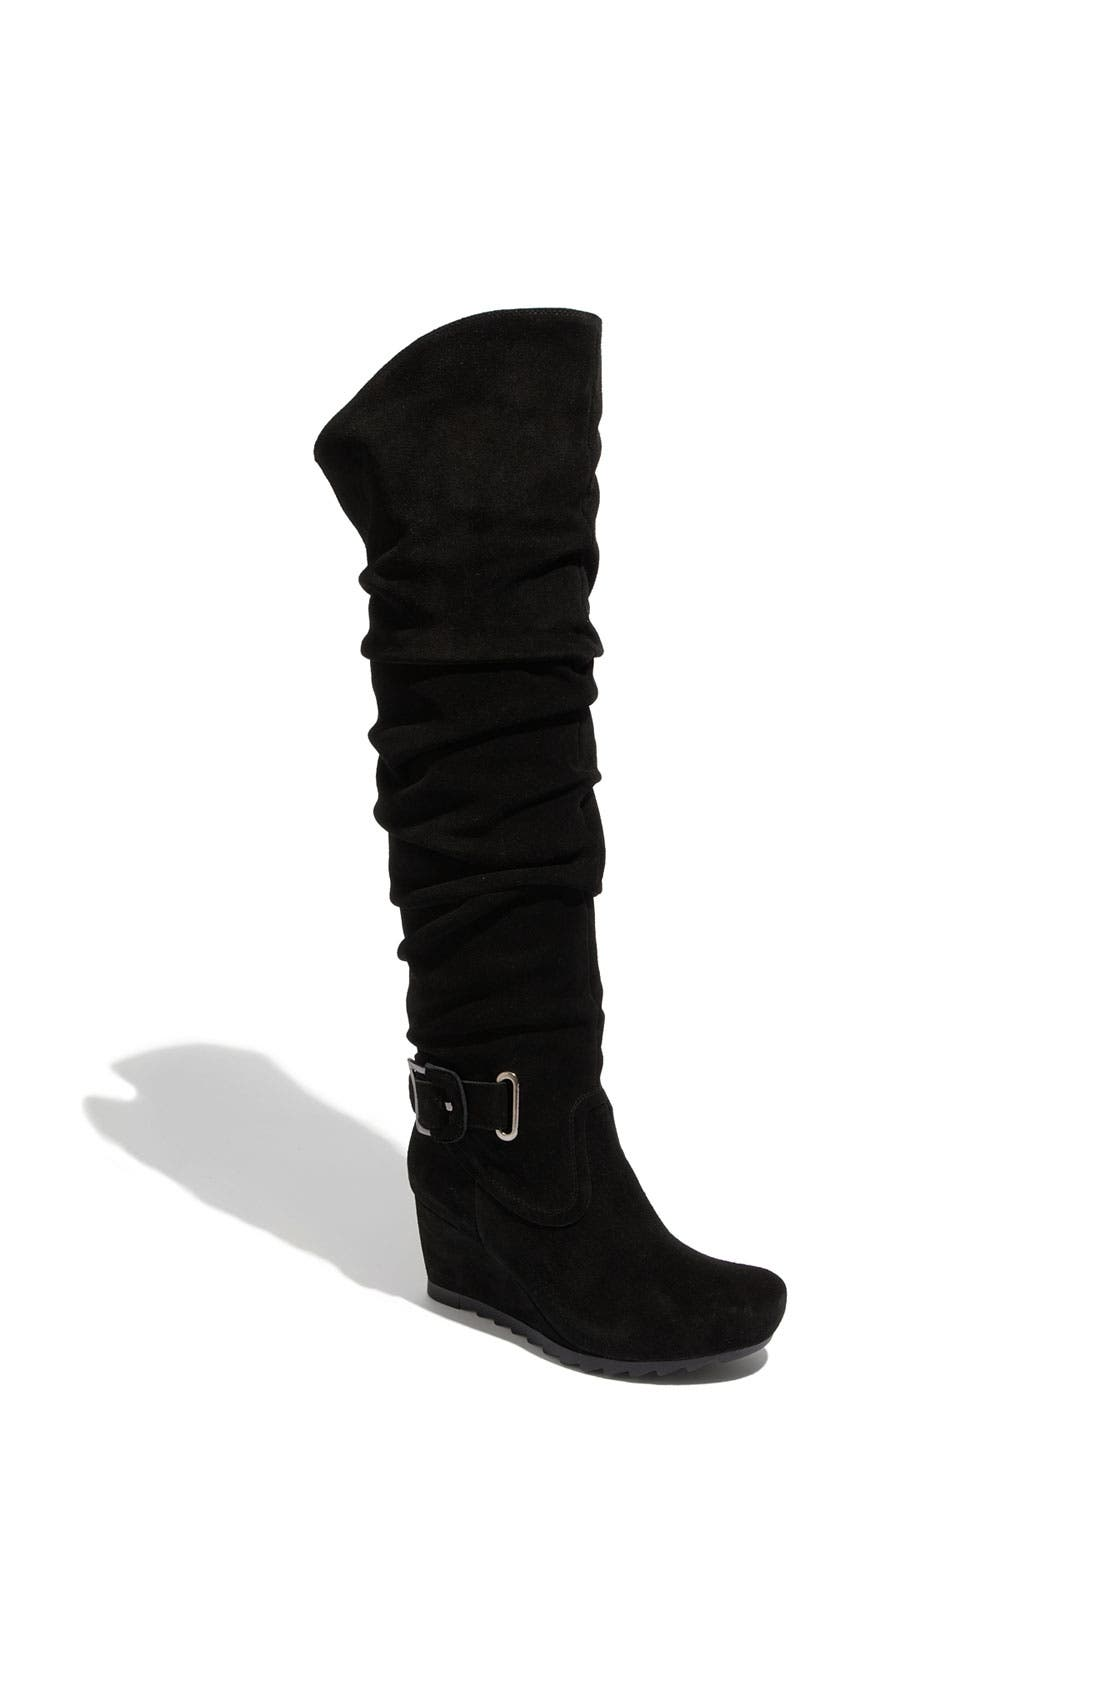 Alternate Image 1 Selected - Earthies® 'Raphaelle' Over the Knee Boot